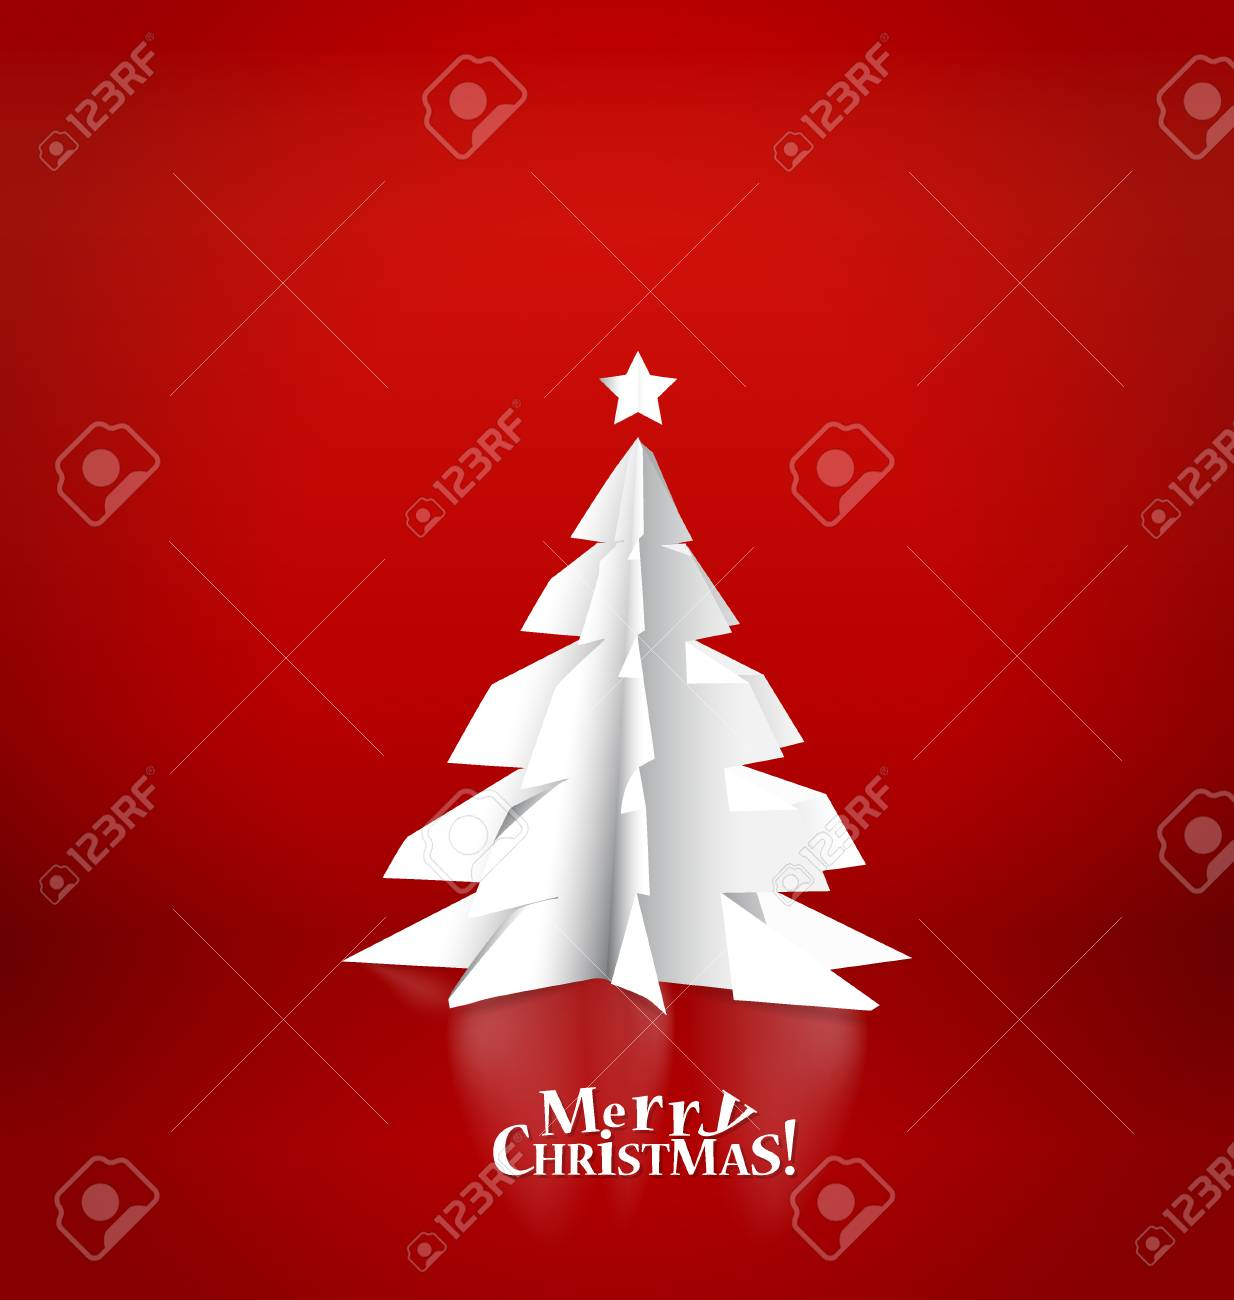 Merry Christmas Greeting Card With Origami Christmas Tree Vector